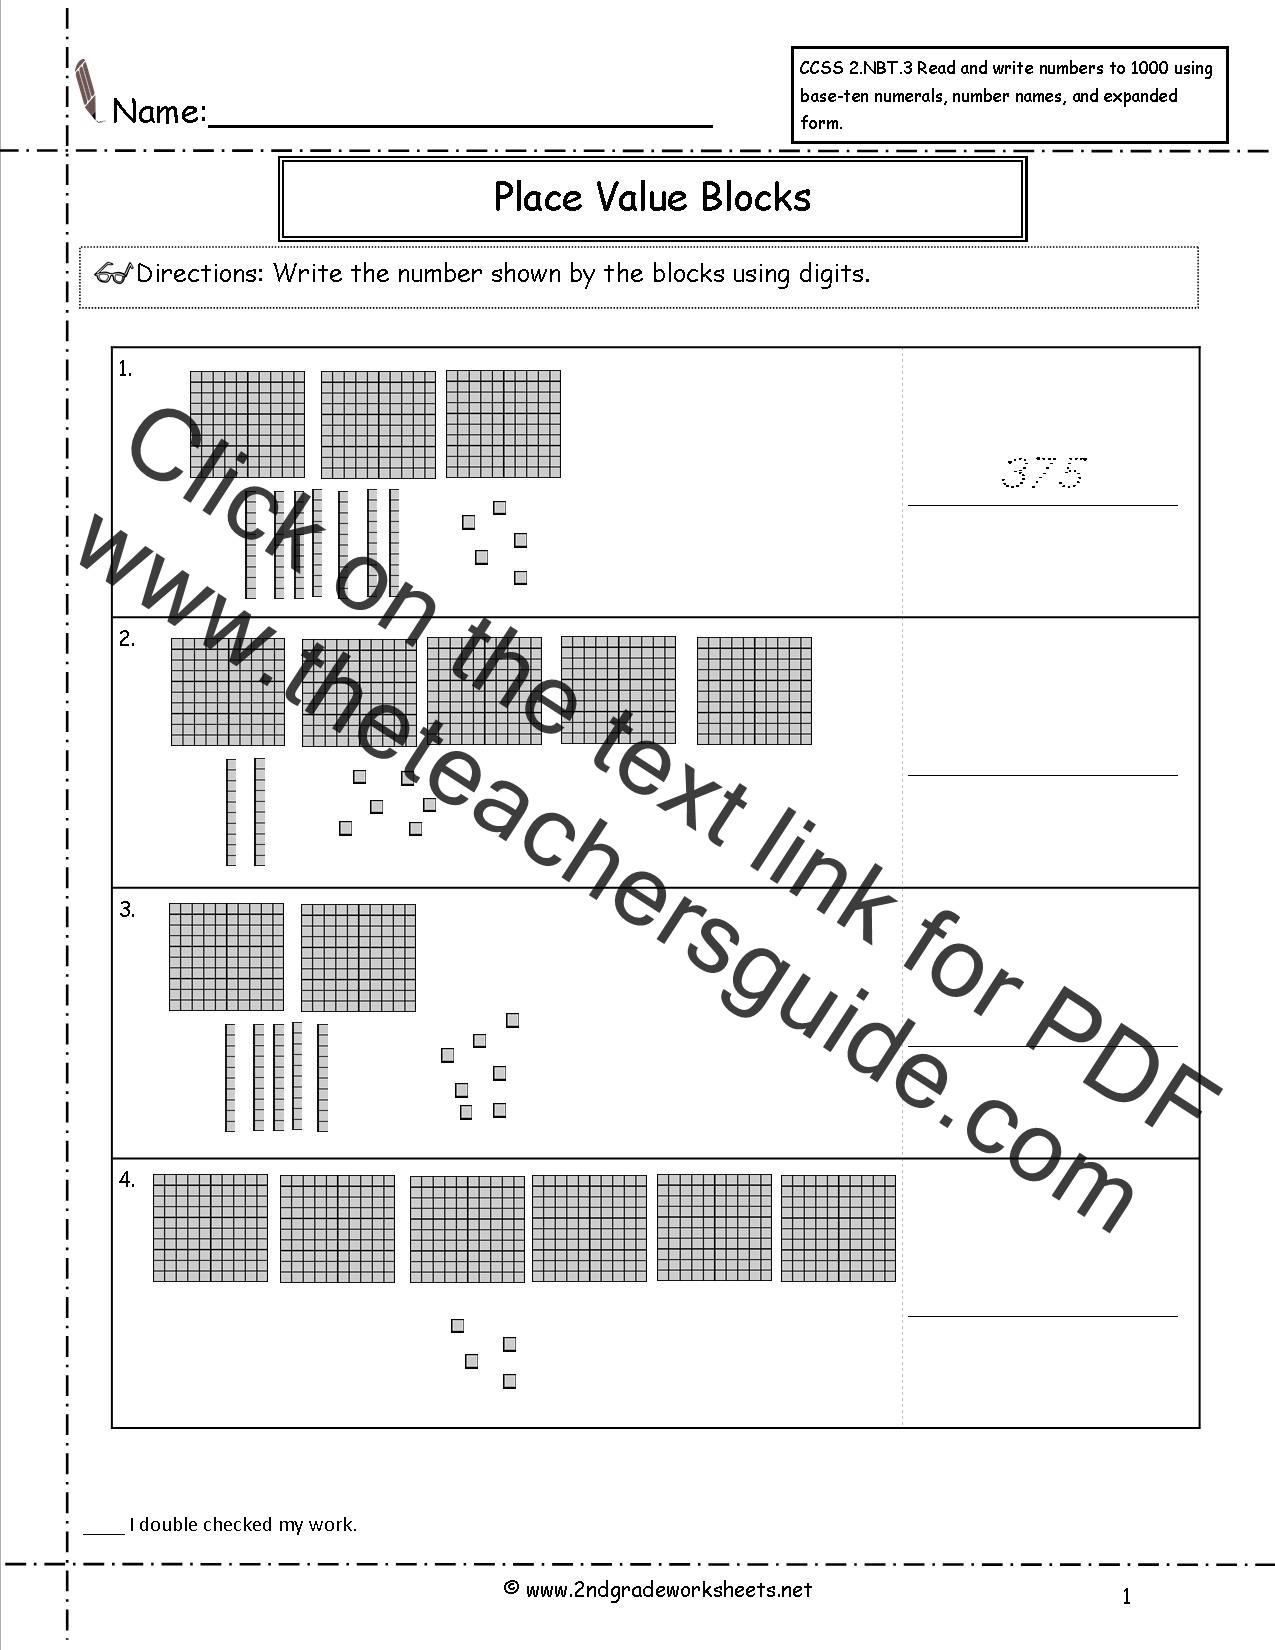 2nd Grade Pictograph Worksheets French Tutors General Chemistry Worksheets and Answers